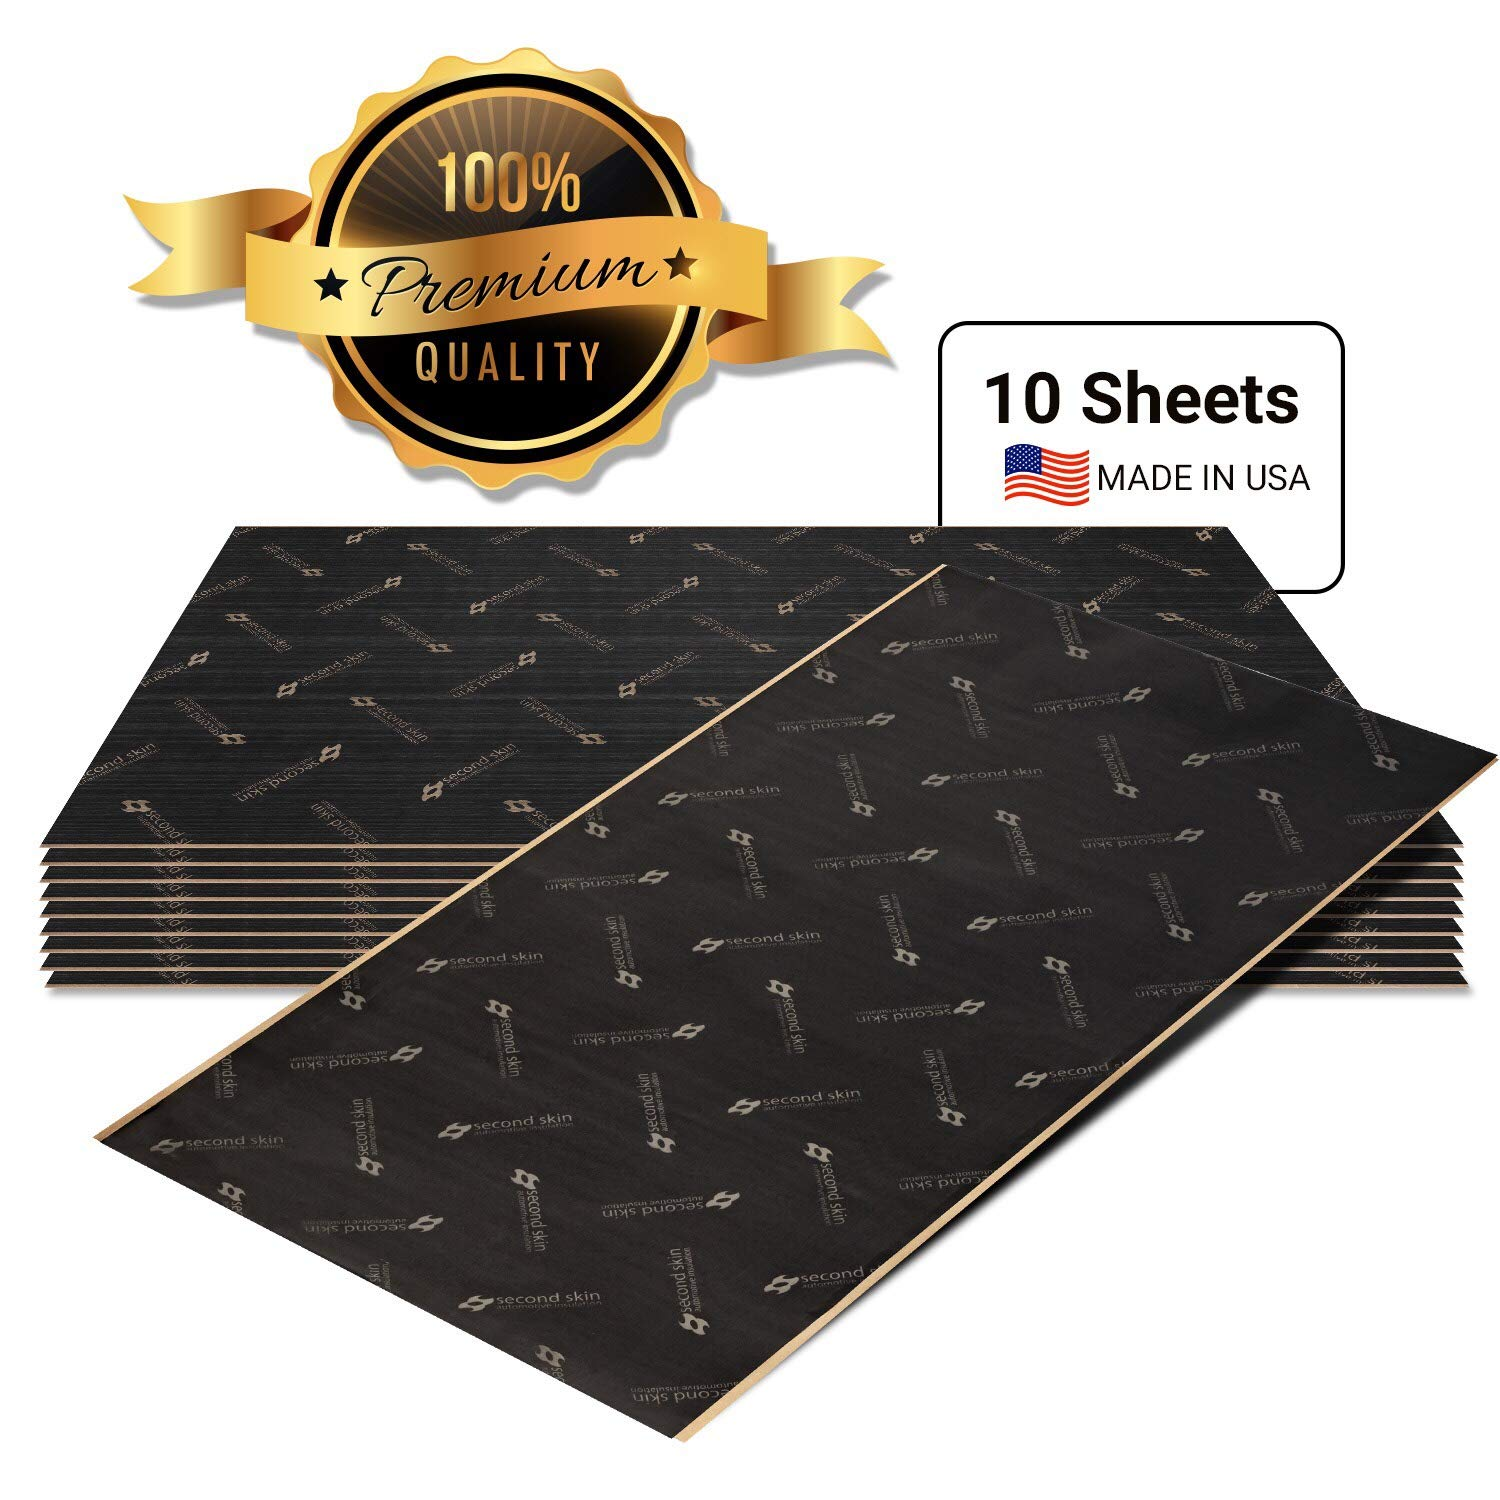 80 Sq Ft Butyl Rubber Car Sound Deadener and Thermal Insulation Made in The USA Second Skin Audio Damplifier Premium Automotive Sound Deadening Mat